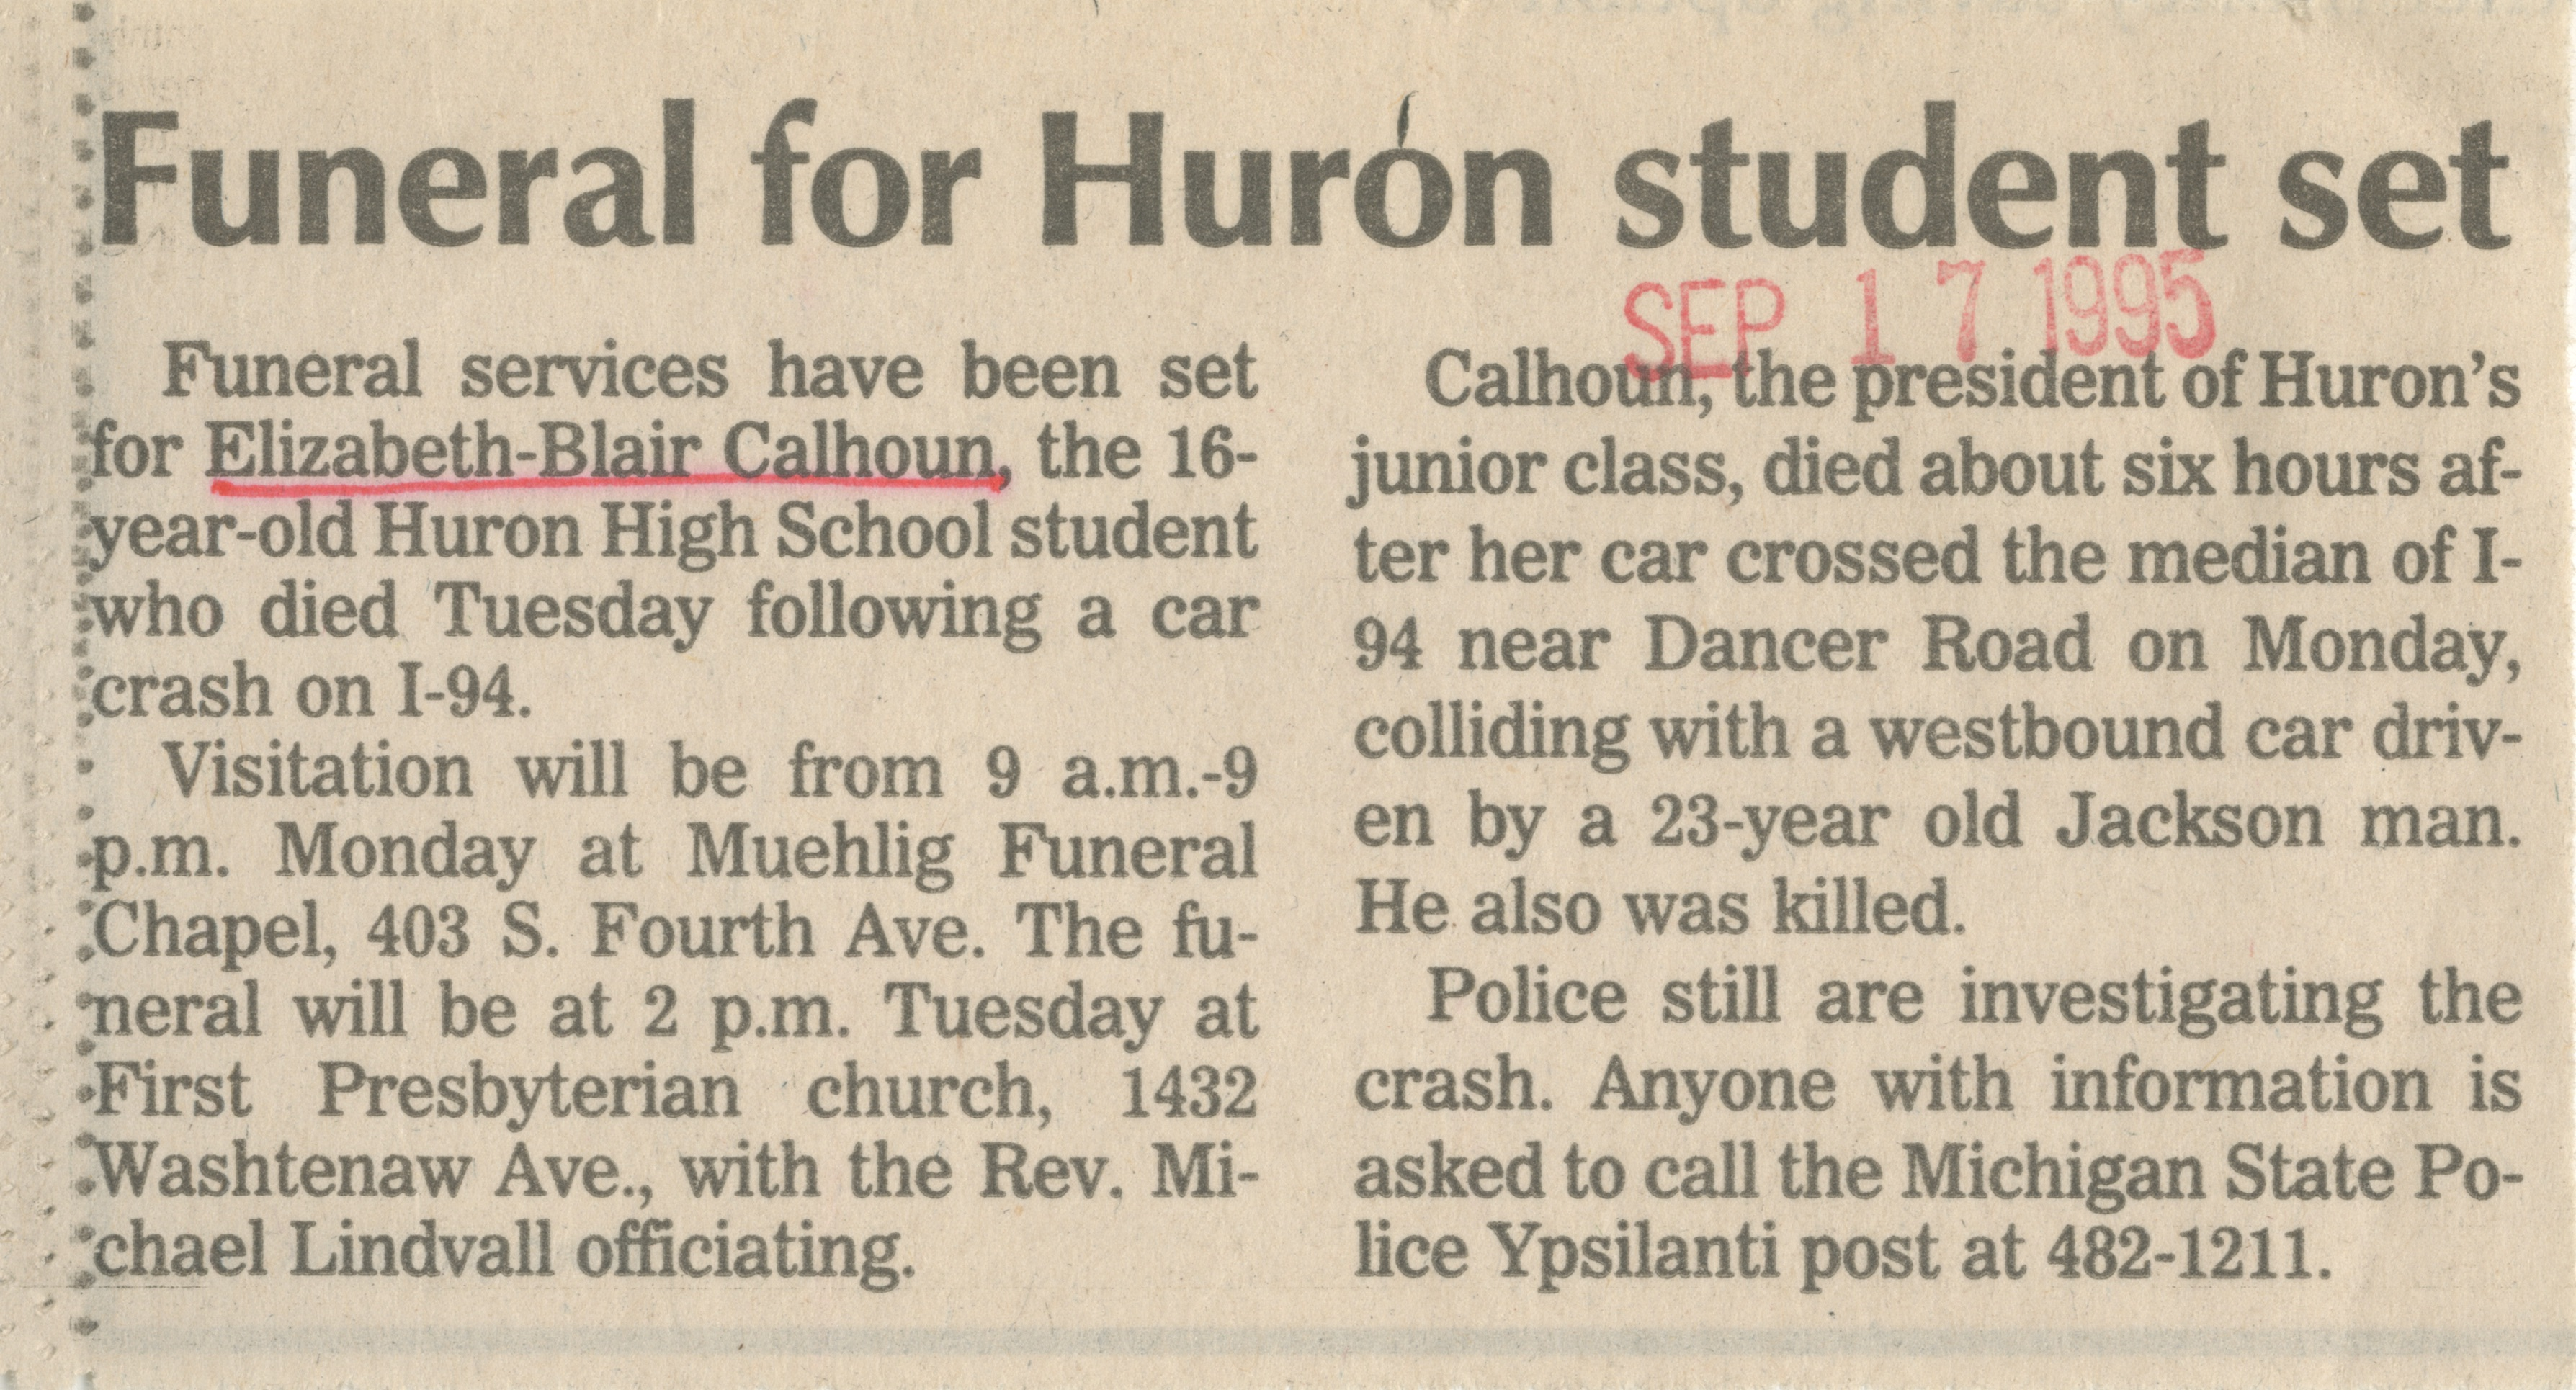 Funeral for Huron student set image